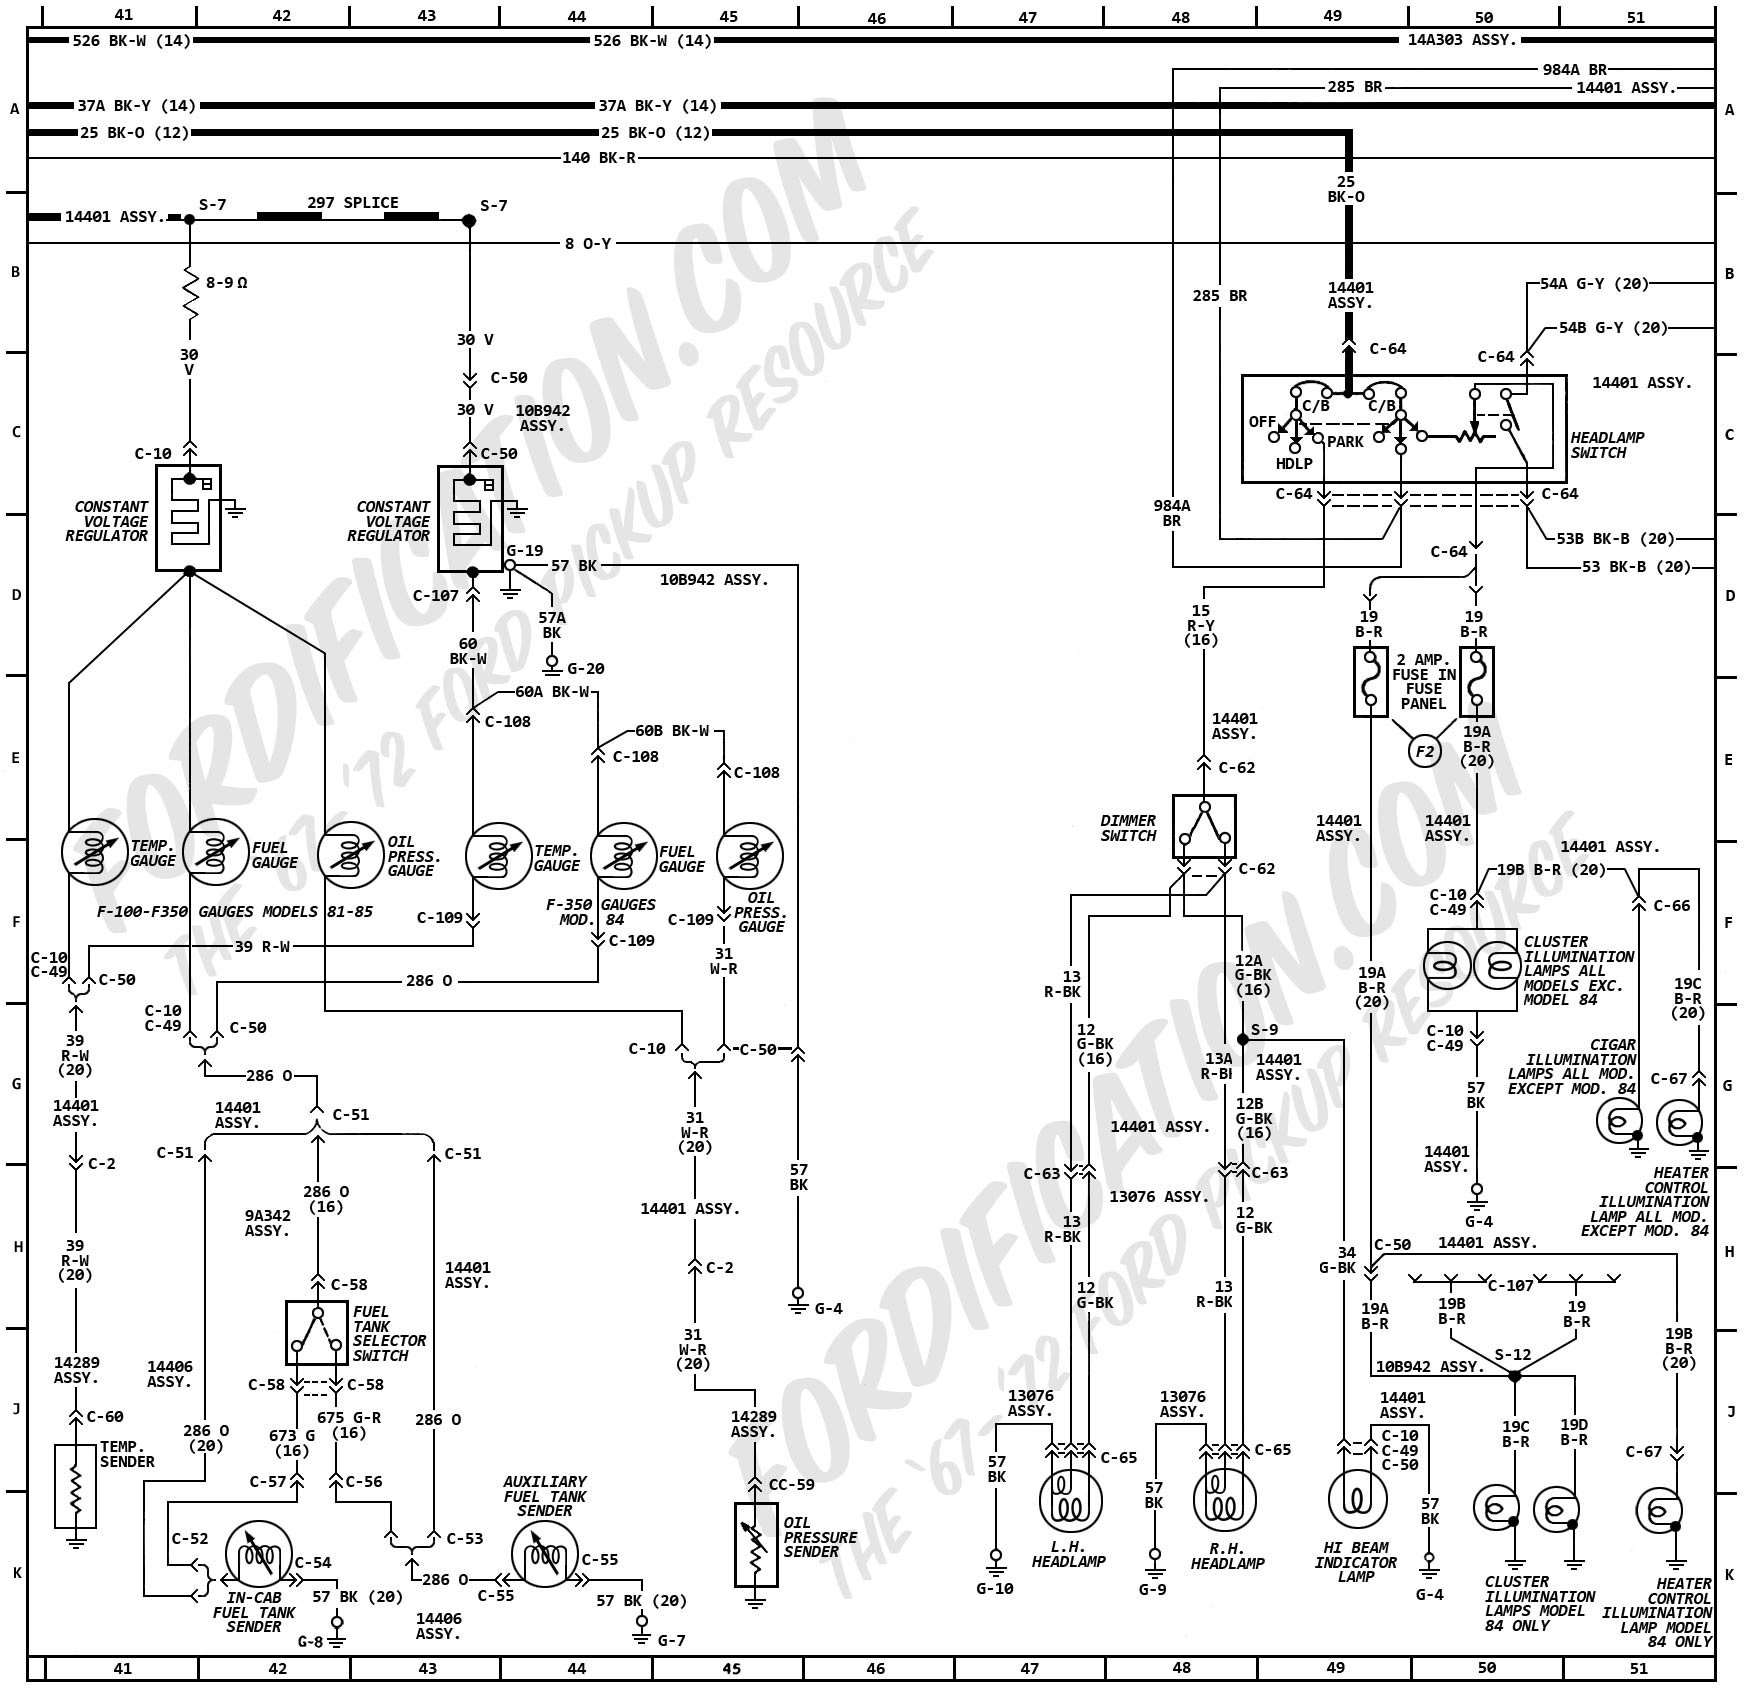 ford wiring harness diagram 2000 mustang gt radio 1972 truck diagrams fordification